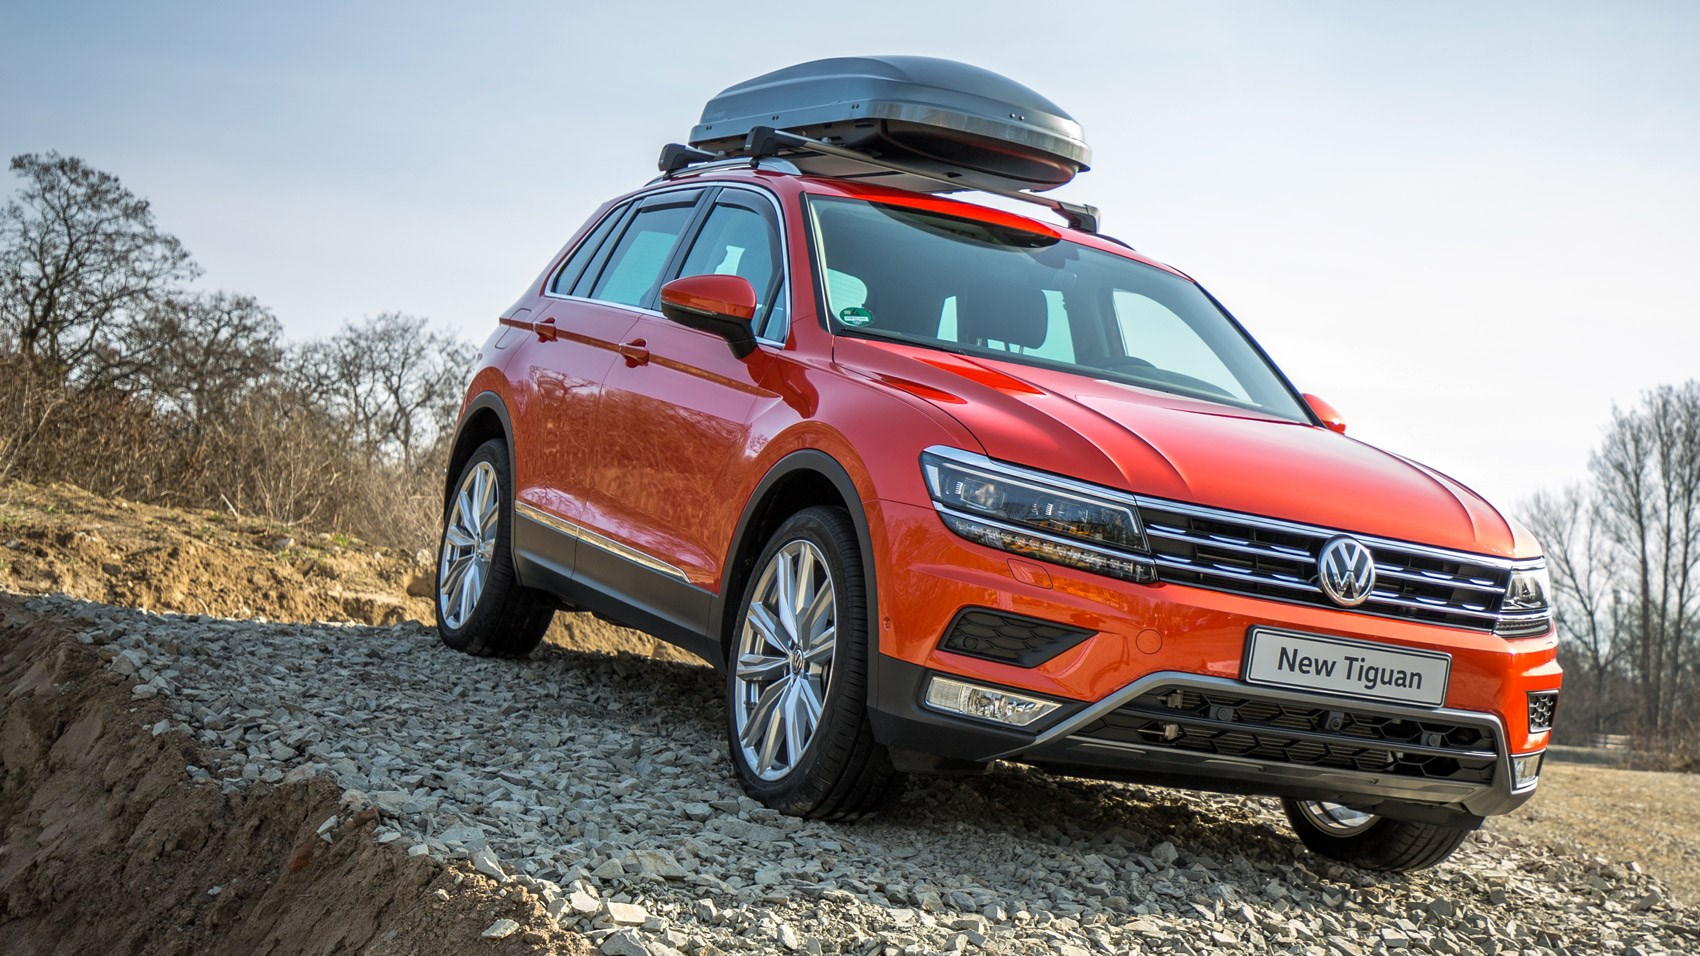 VW Tiguan 2.0 TSI 180 Outdoor (2016) review | CAR Magazine